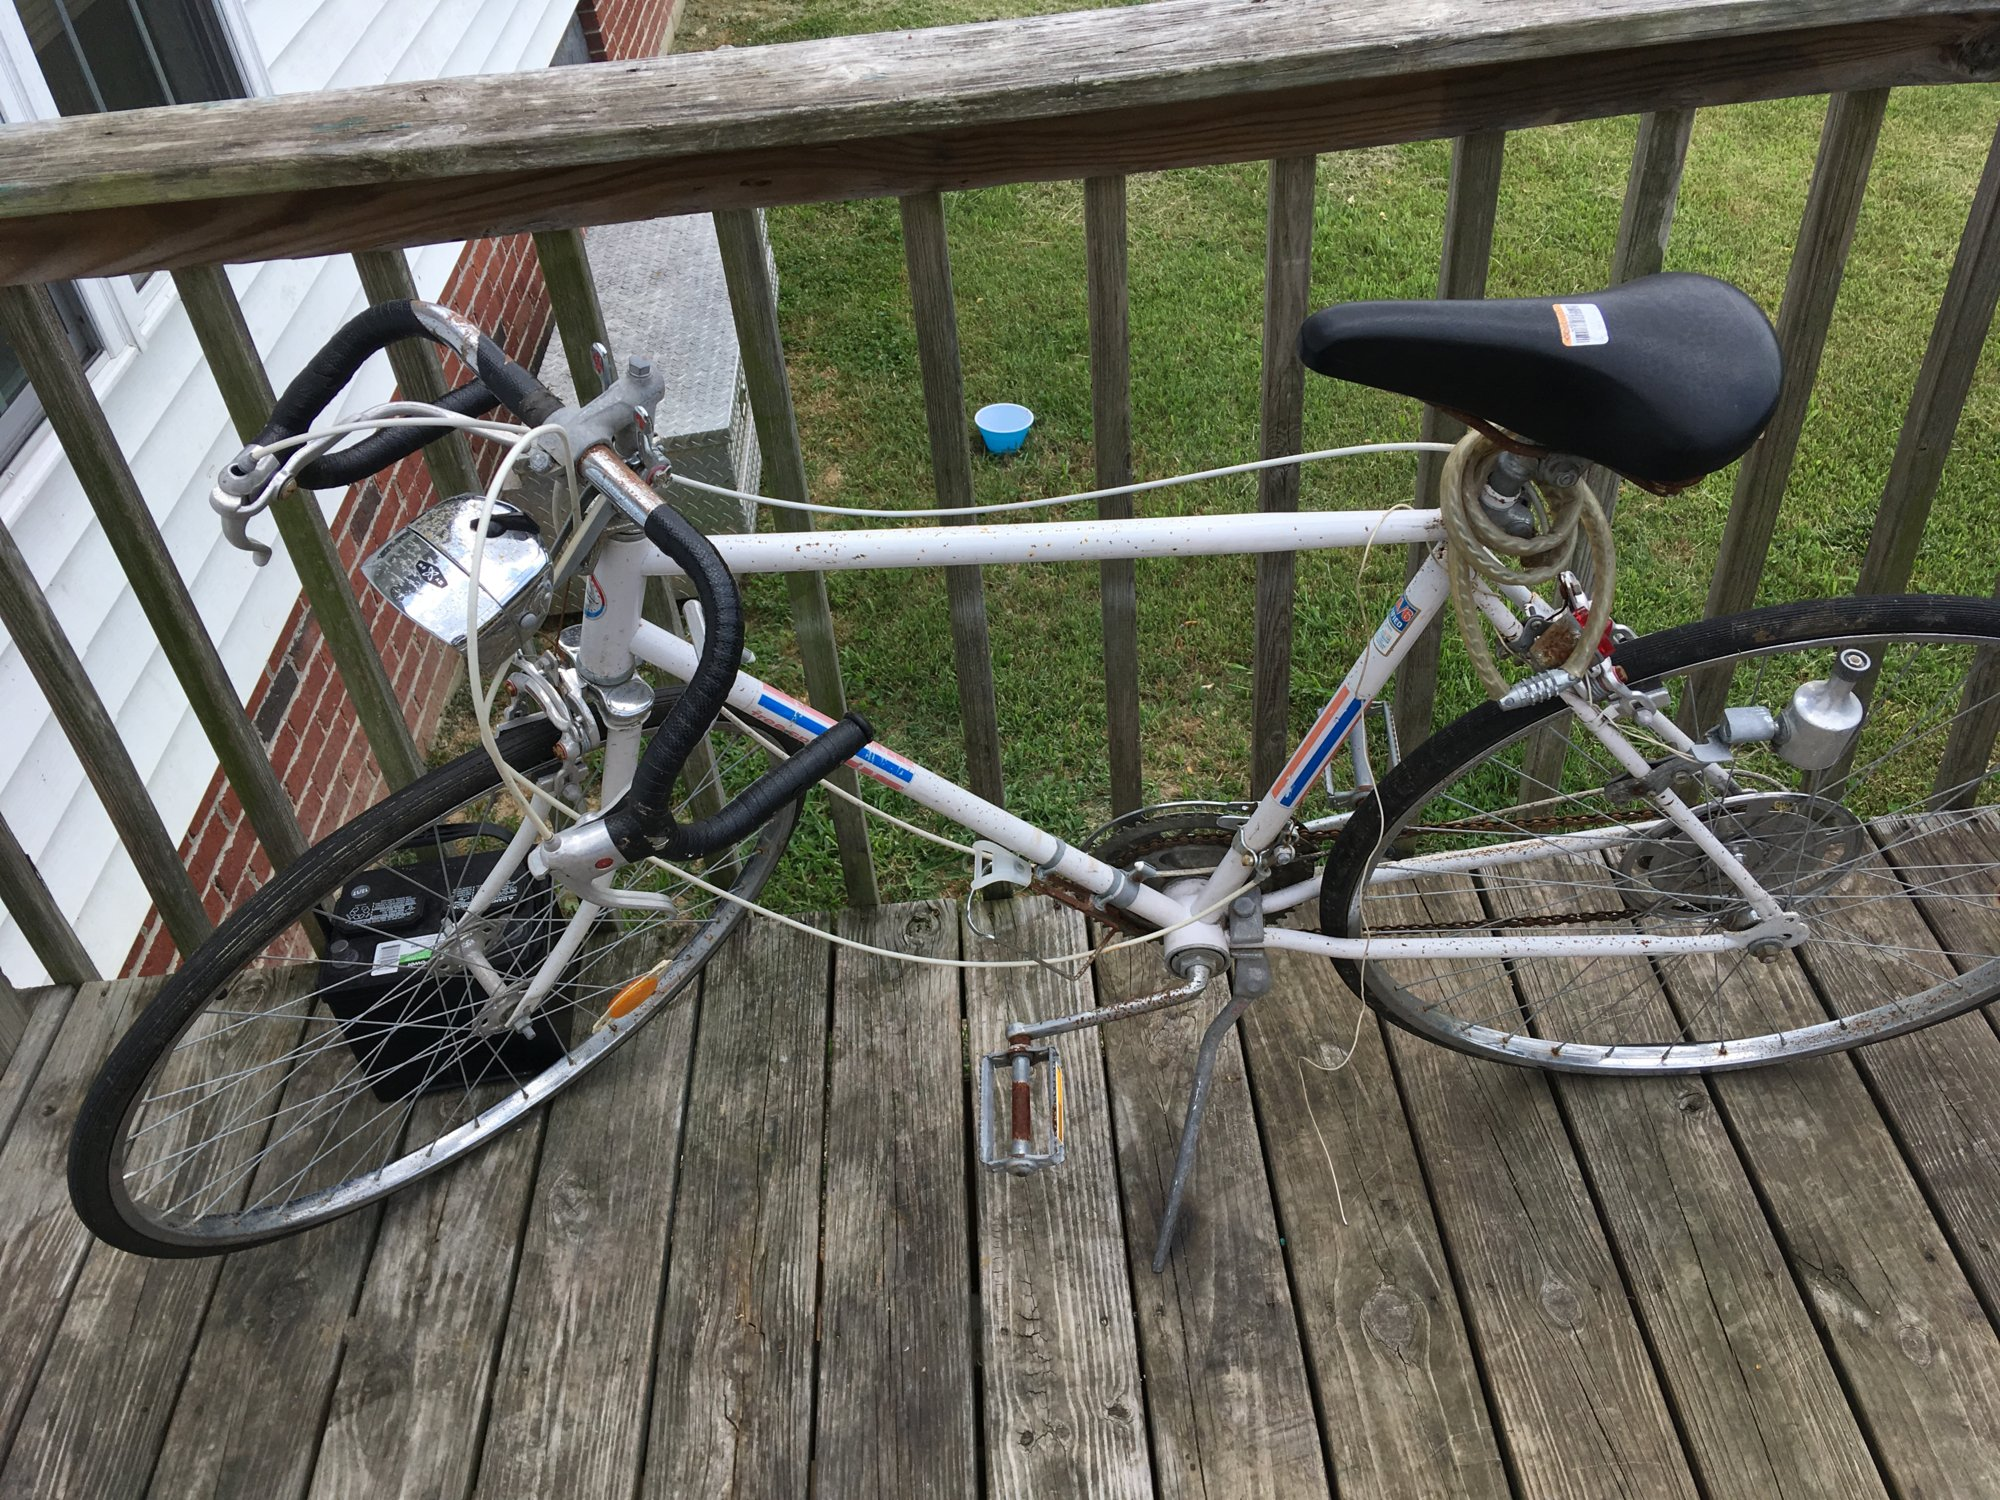 Old Sears 10 speed Free Spirit    The Classic and Antique